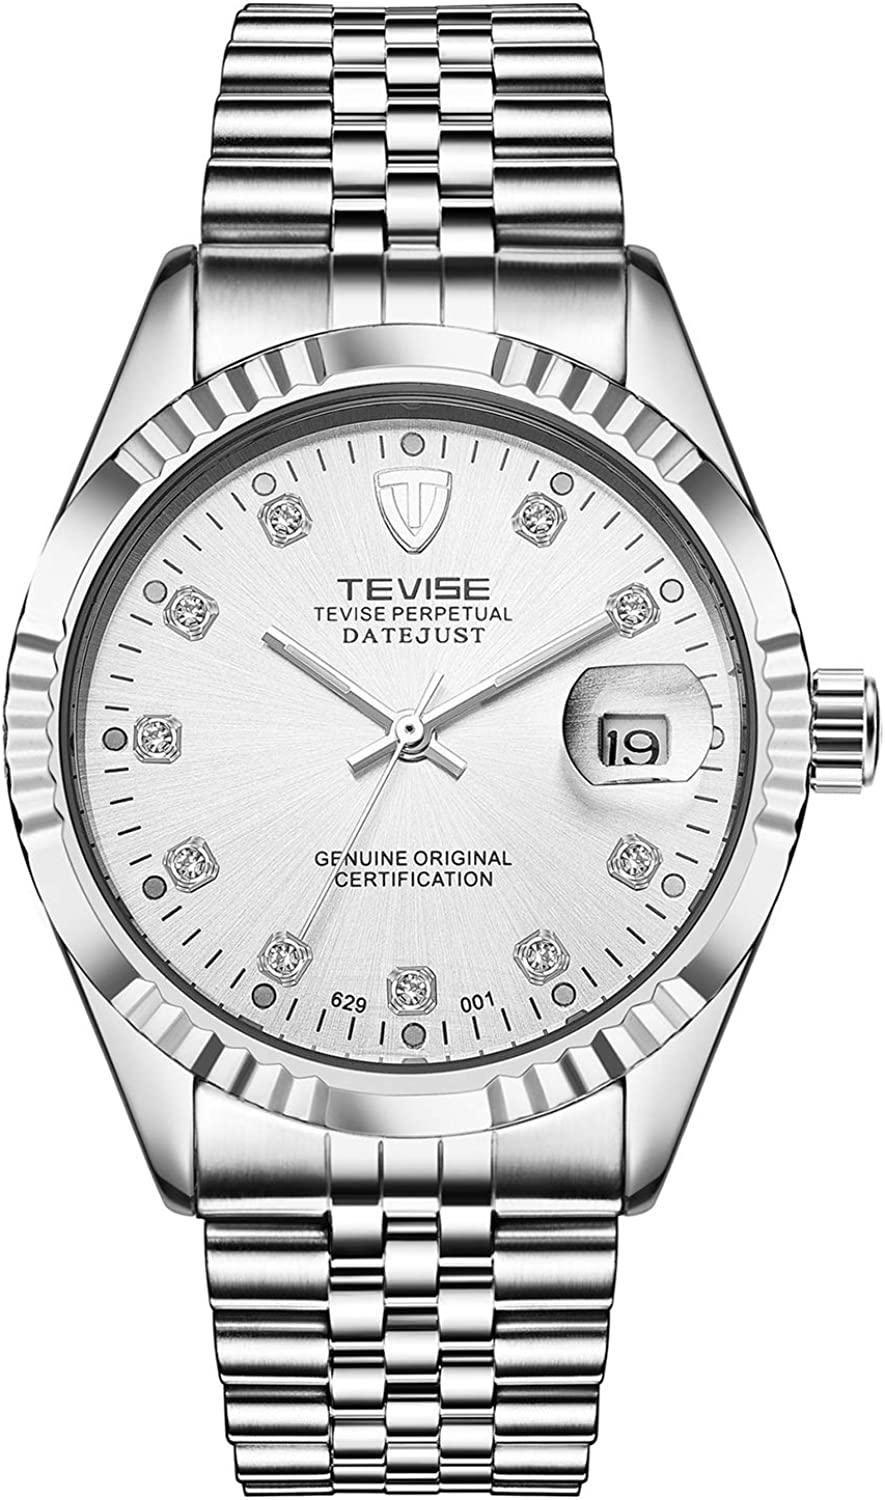 Watch Men Multifunctional Lightweight Business Commute Stainless Watch with Storage Box Mechanical Watch for, Fashion Watch (color   White, Size   Free)